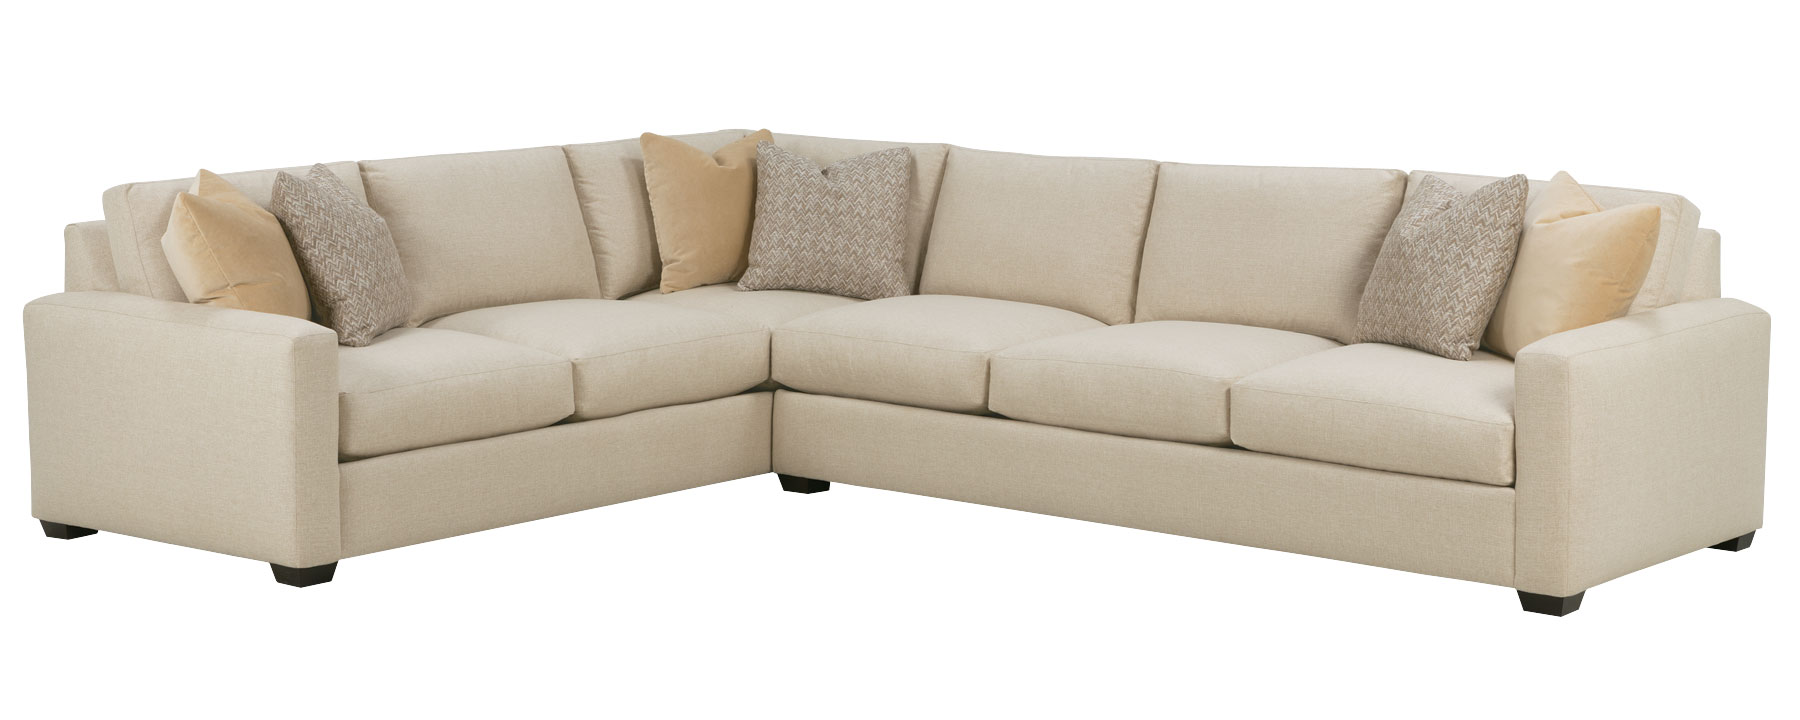 Deep seating large scale track arm sectional club furniture Deep sectional sofa